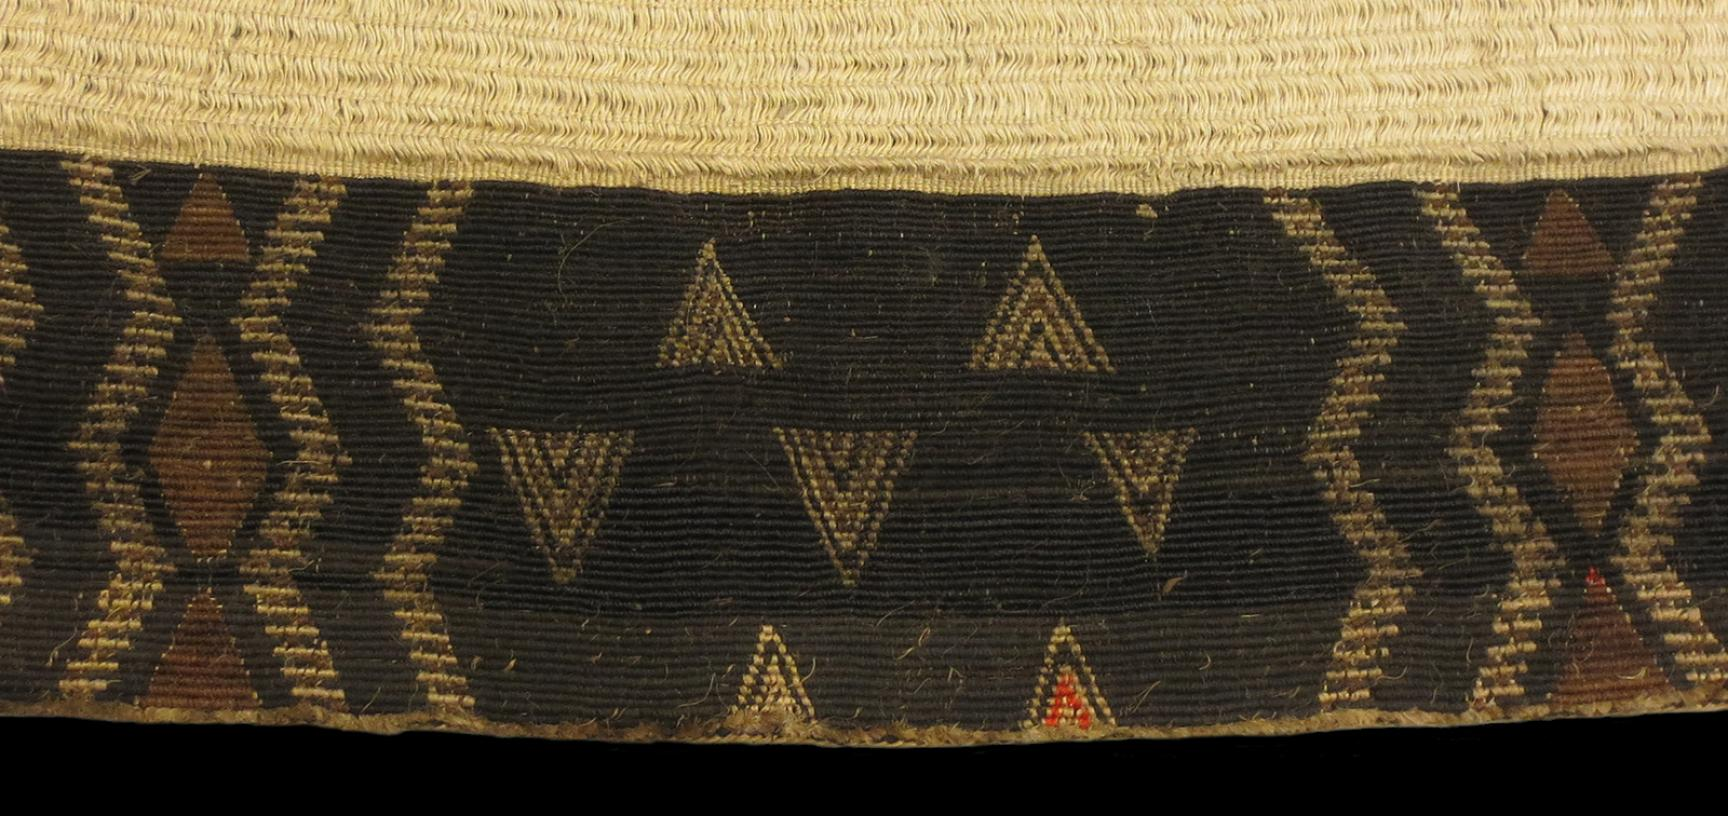 Detail of tāniko border on cloak (1923.87.162)